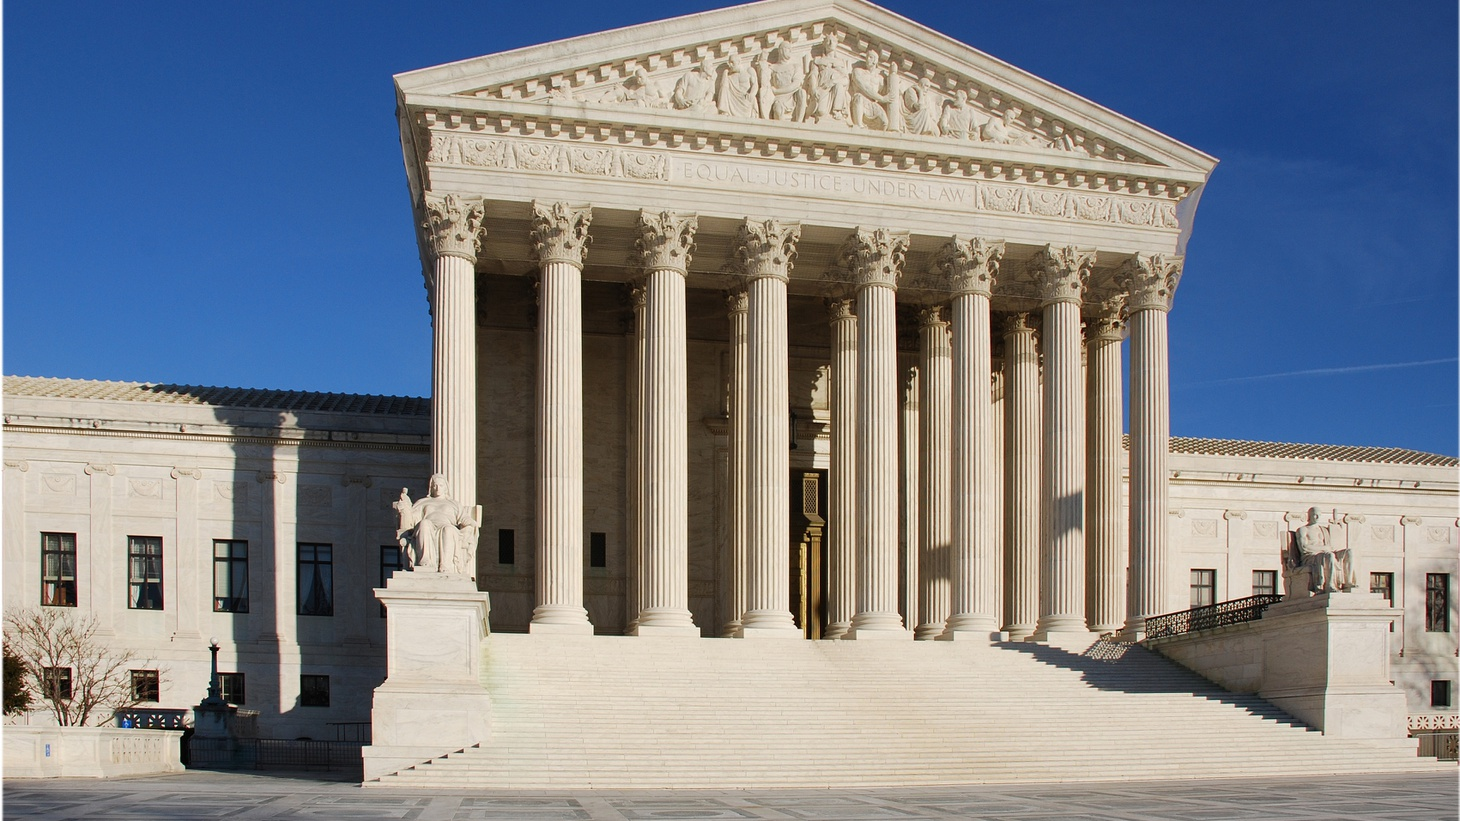 In the past nine years some 17,000 lawyers have petitioned the US Supreme Court, but some had a much better chance of getting their cases heard than others. A recent study shows just 66 got 43% of the cases the justices chose to hear.